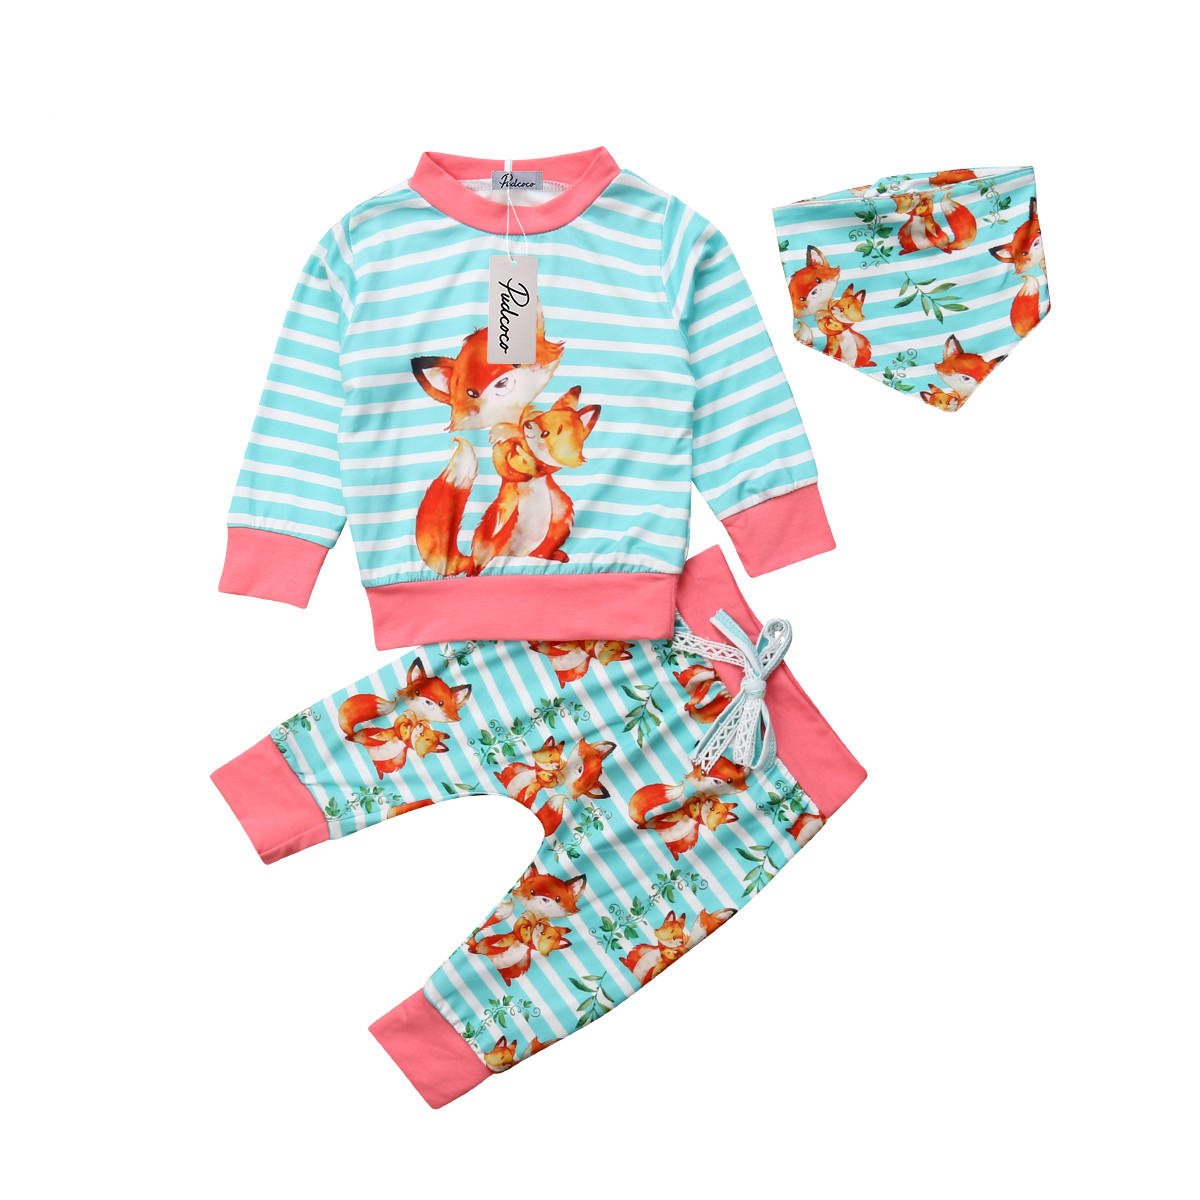 3 Pcs Babies Clothes Outfits Newborn Toddler Baby Kids Boy Girls Fox T shirt Tops Pants Set Clothes Outfits Joli Fille 2019 in Clothing Sets from Mother Kids